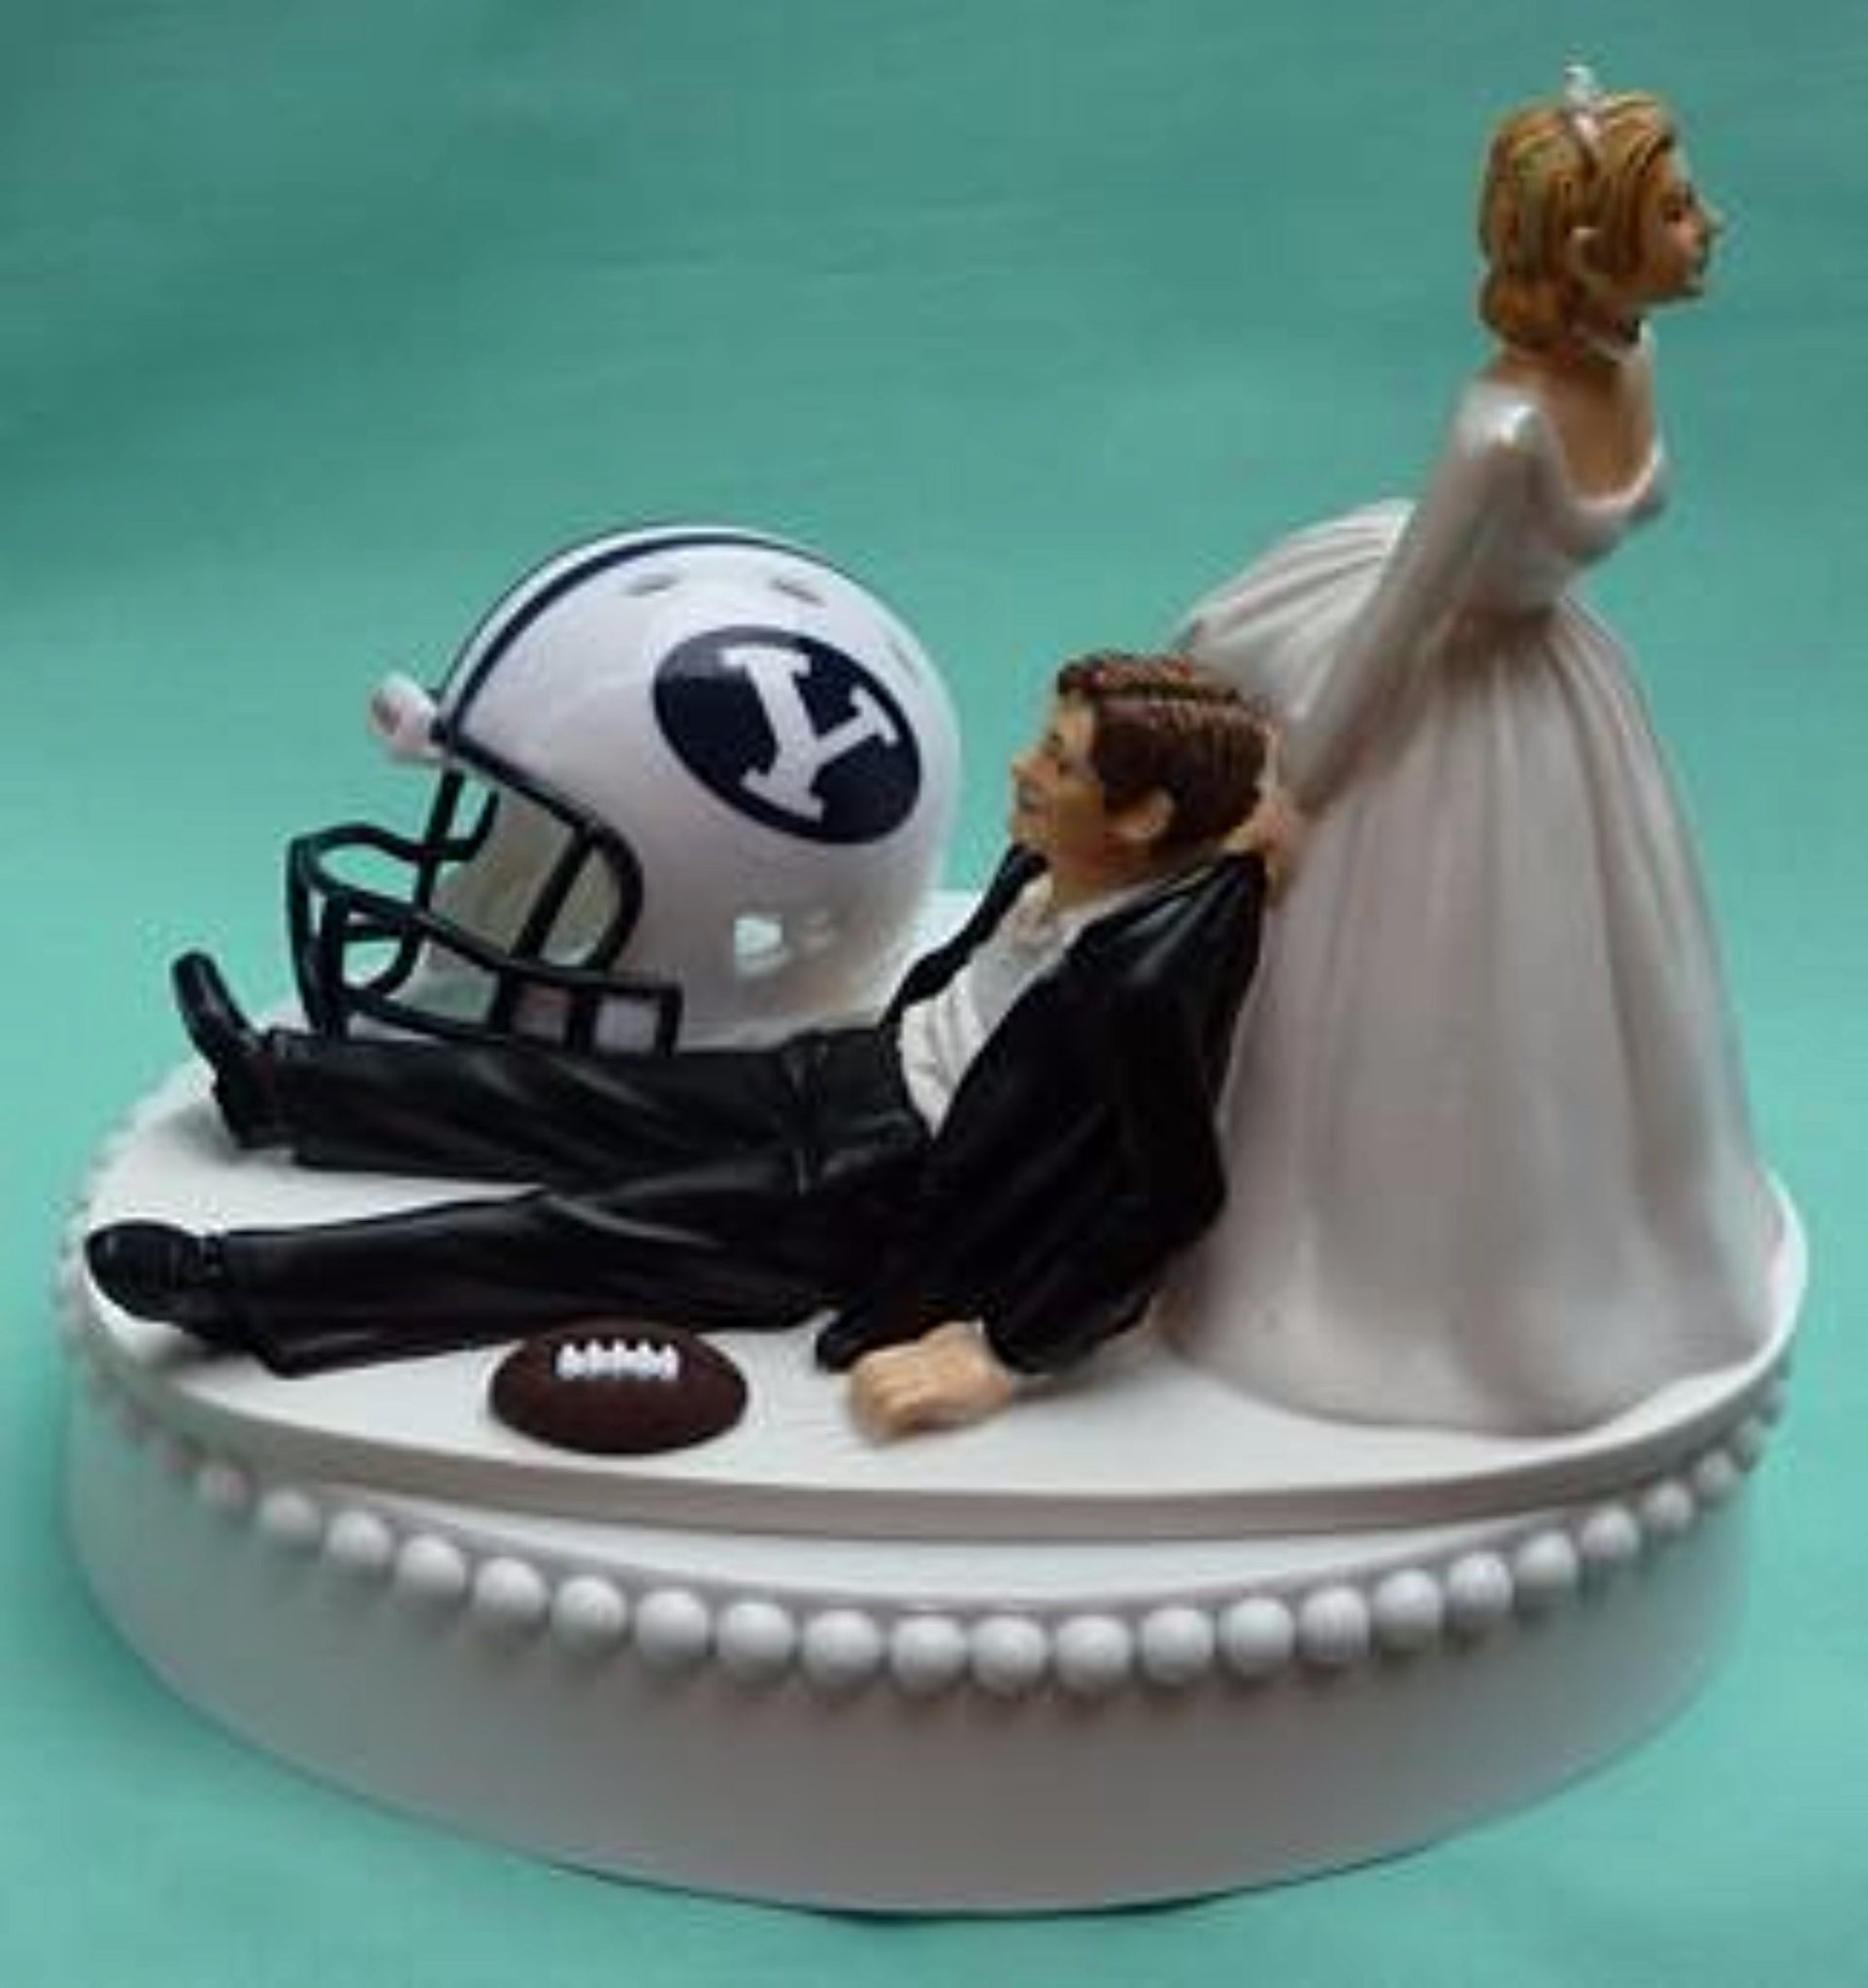 Brigham Young wedding cake topper BYU Cougars University football sports fans funny bride dragging groom humorous Fun Wedding Things reception gift